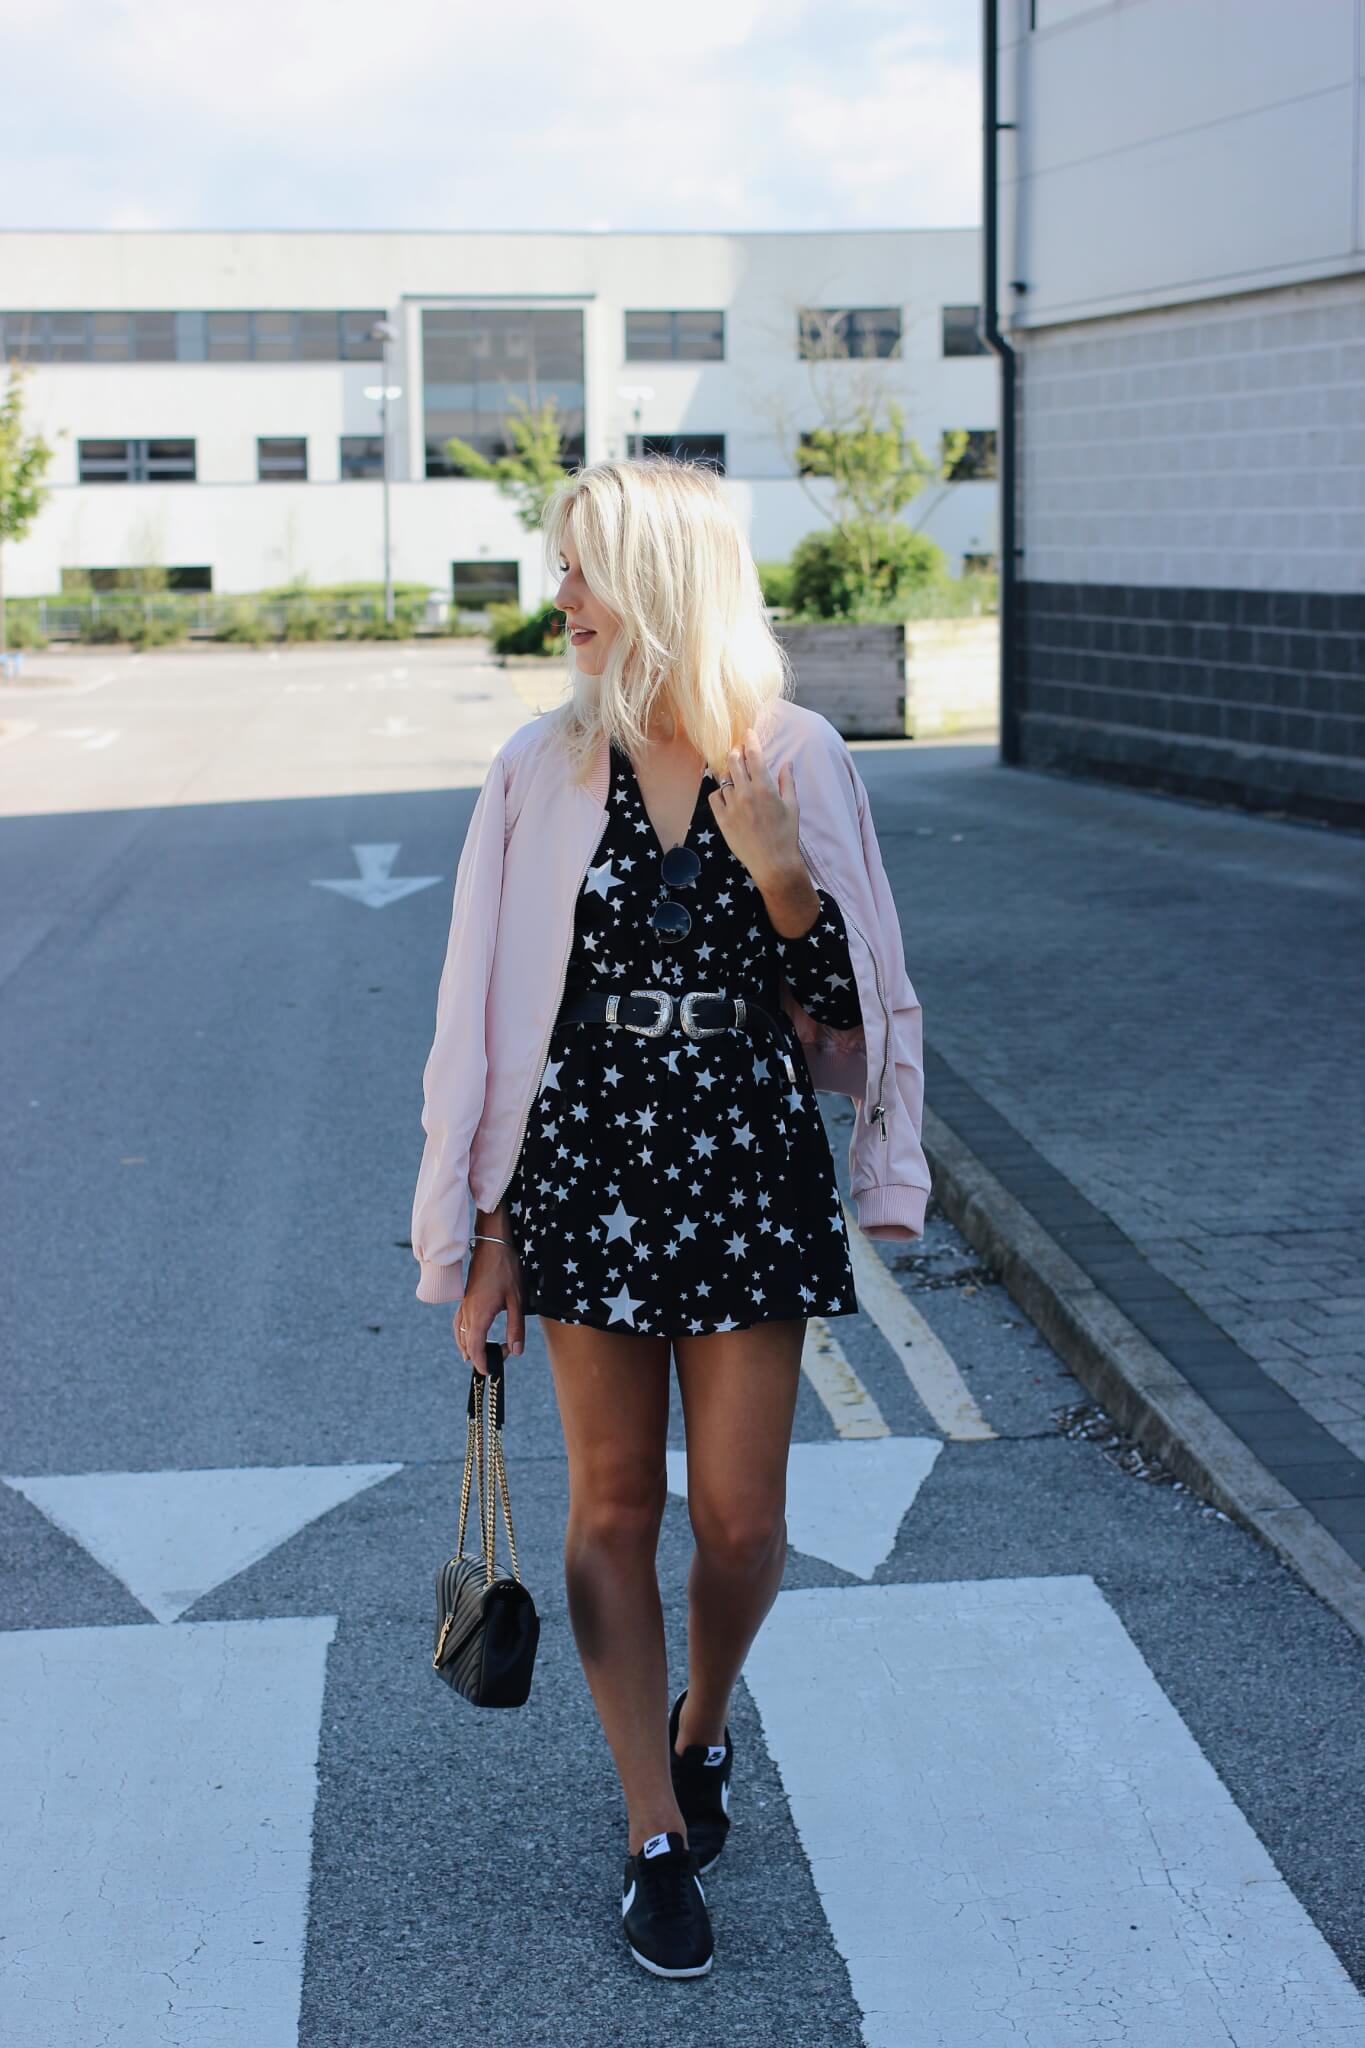 Star Print Dress and Pink Bomber Jacket on fashion blogger Lurchhoundloves